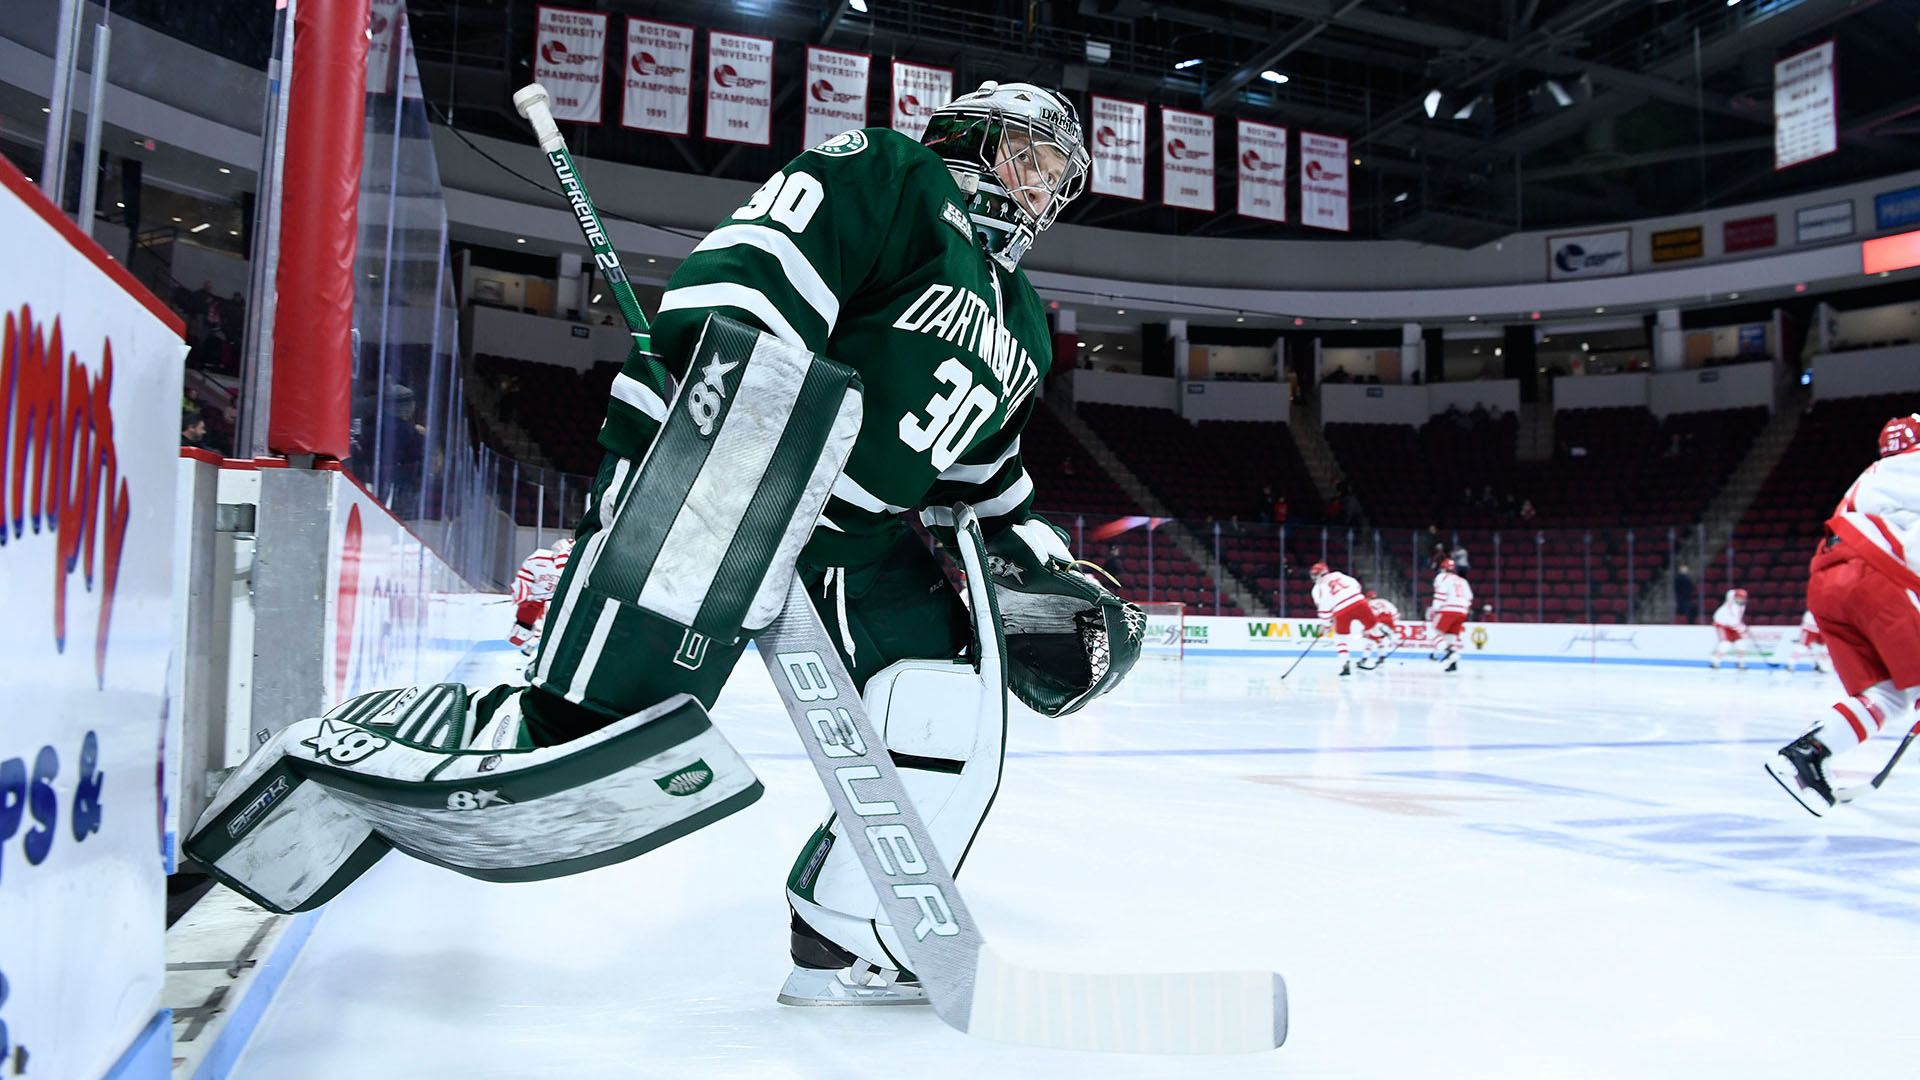 Dean Shatzer - Dartmouth NCAA